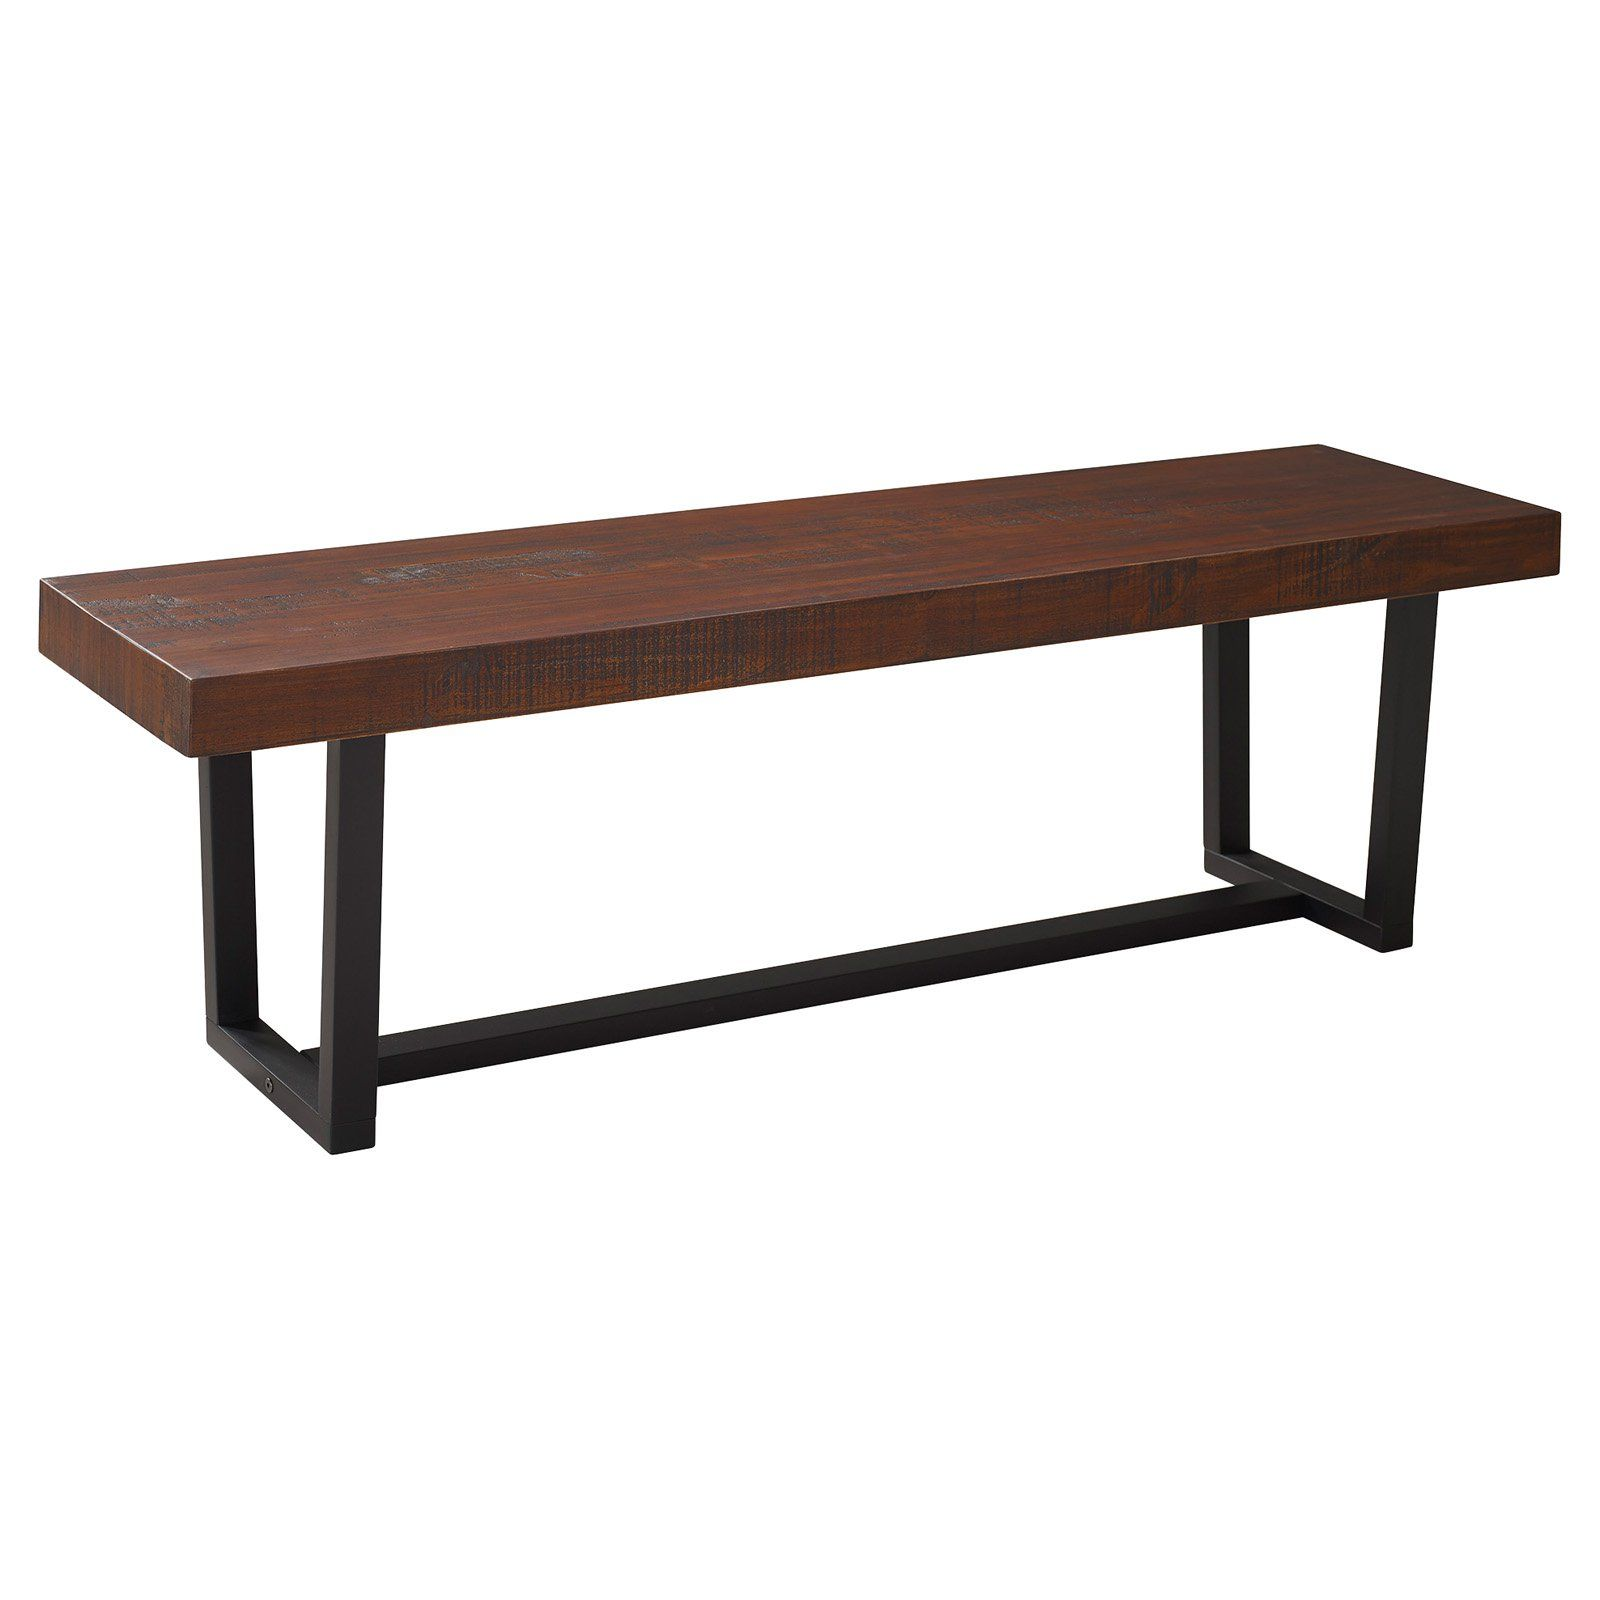 Phenomenal Manor Park 60 In Backless Dining Bench Mahogany In 2019 Onthecornerstone Fun Painted Chair Ideas Images Onthecornerstoneorg